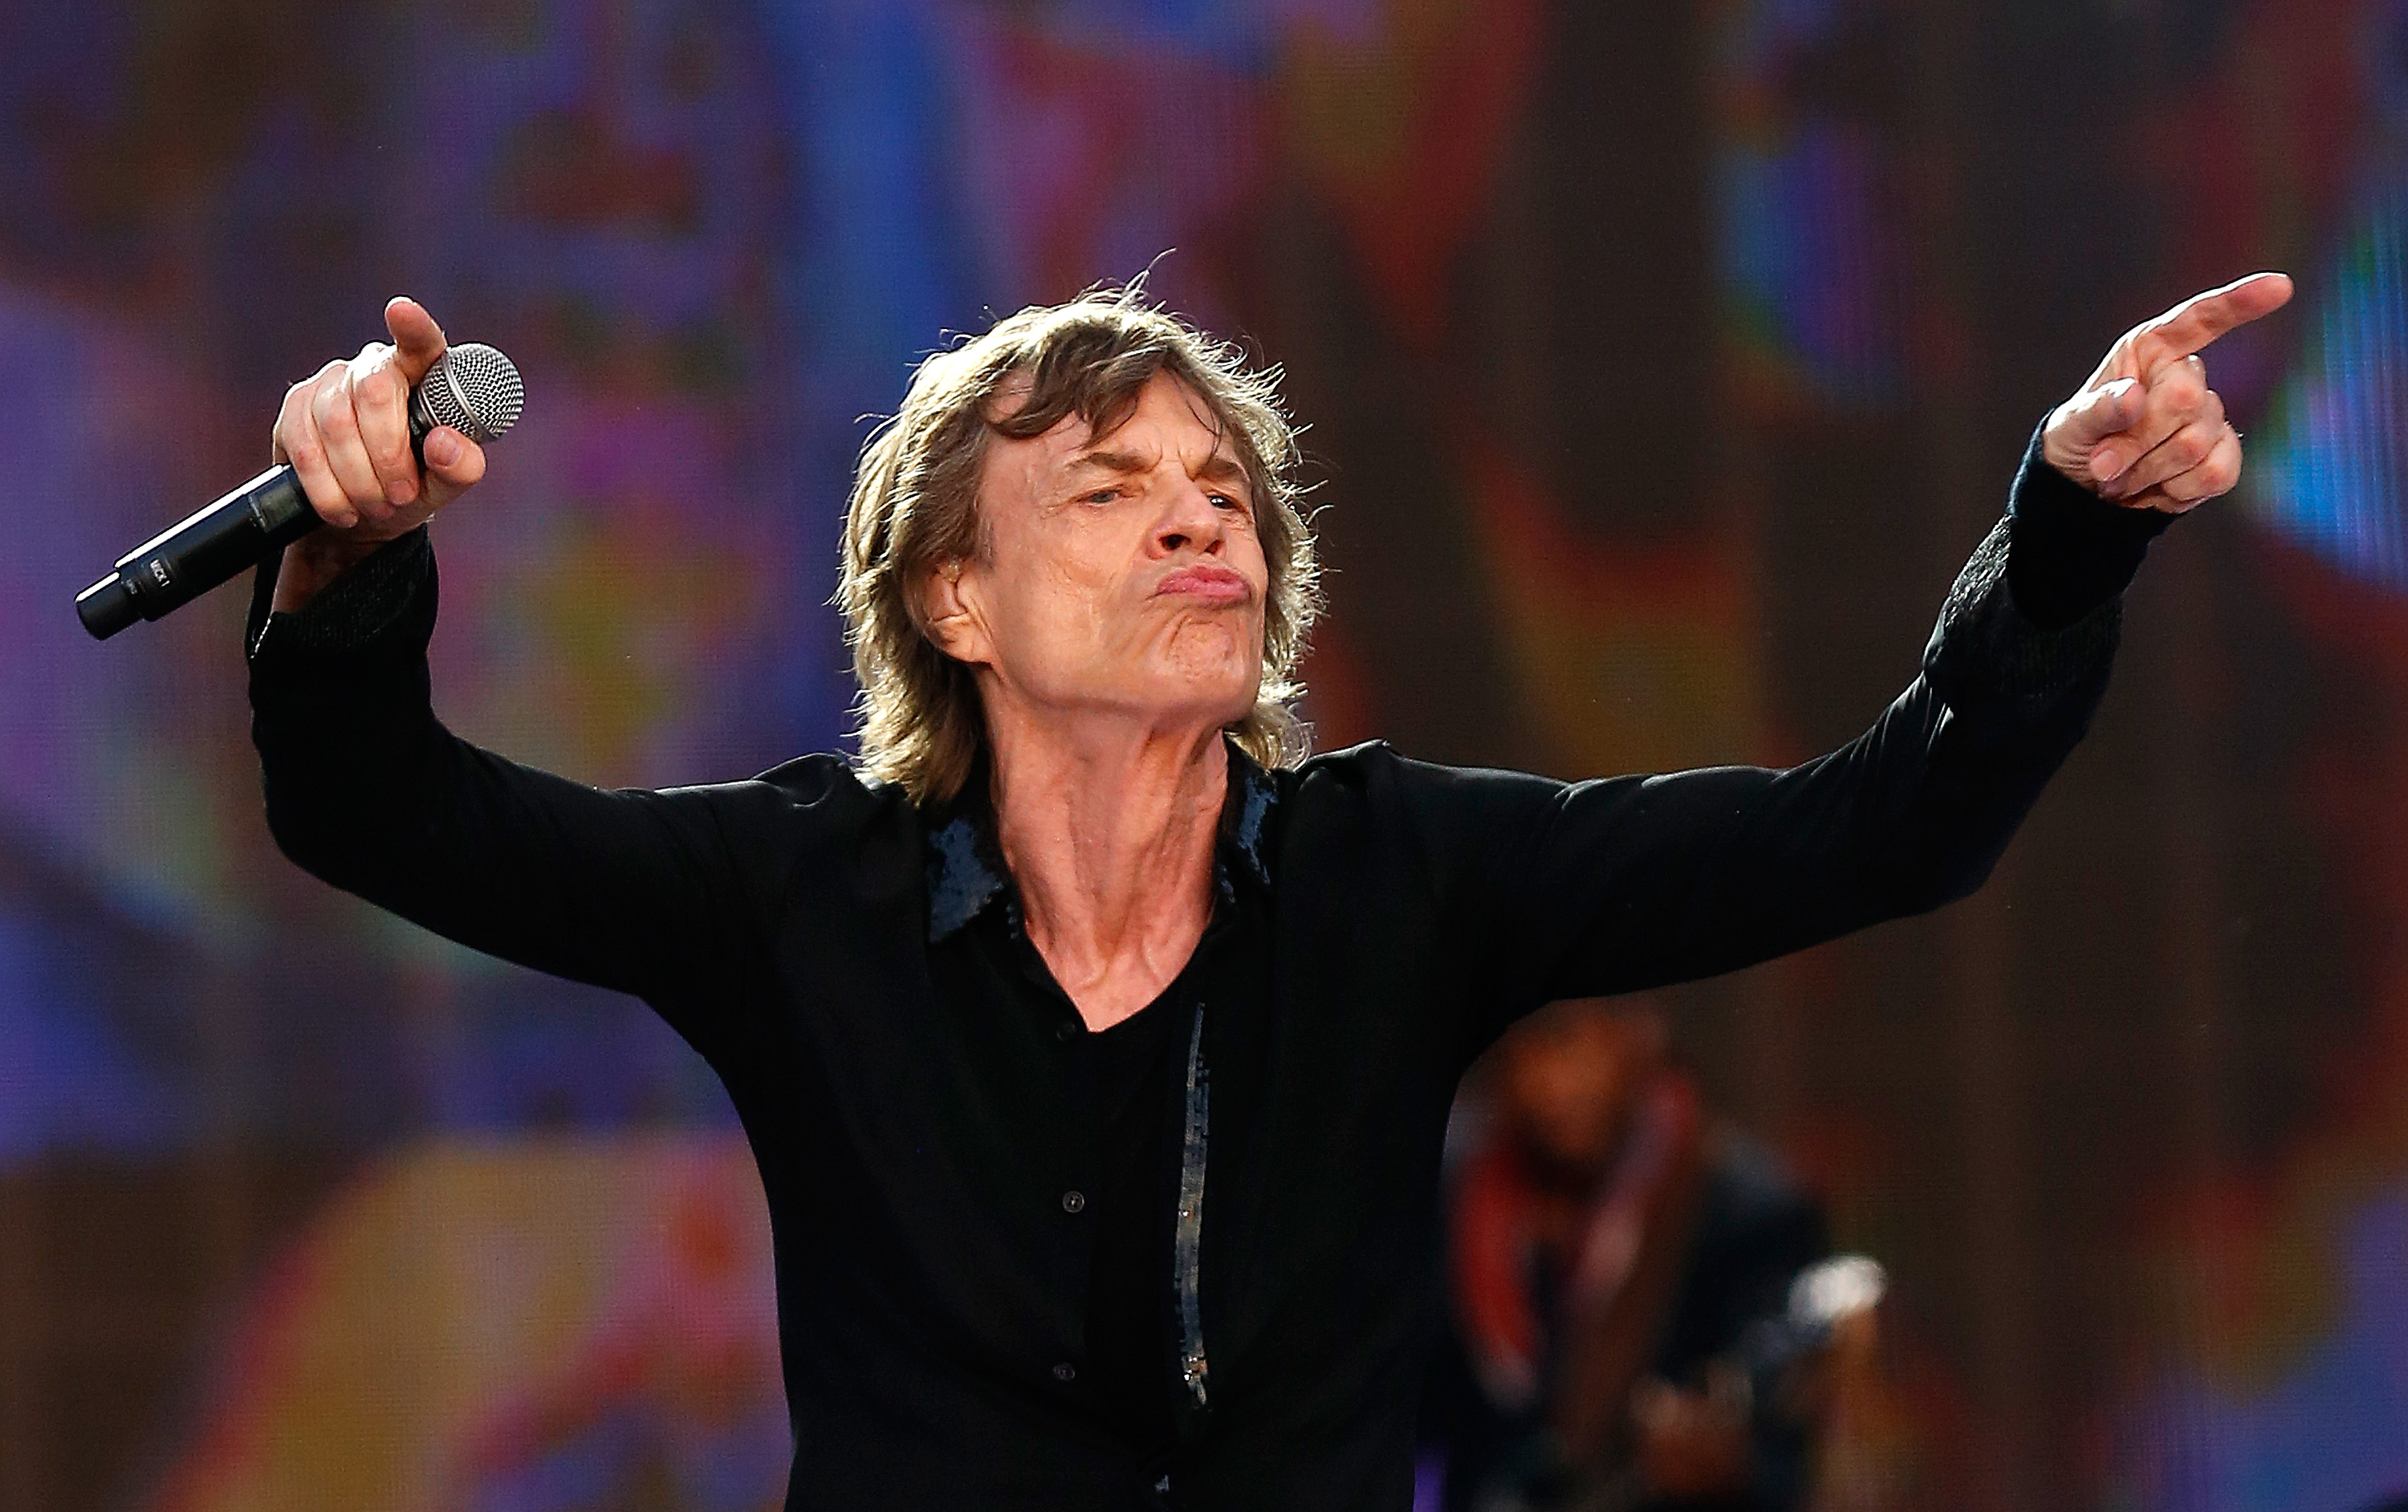 Mick Jagger: Mick Jagger, 73, Is A Father Again